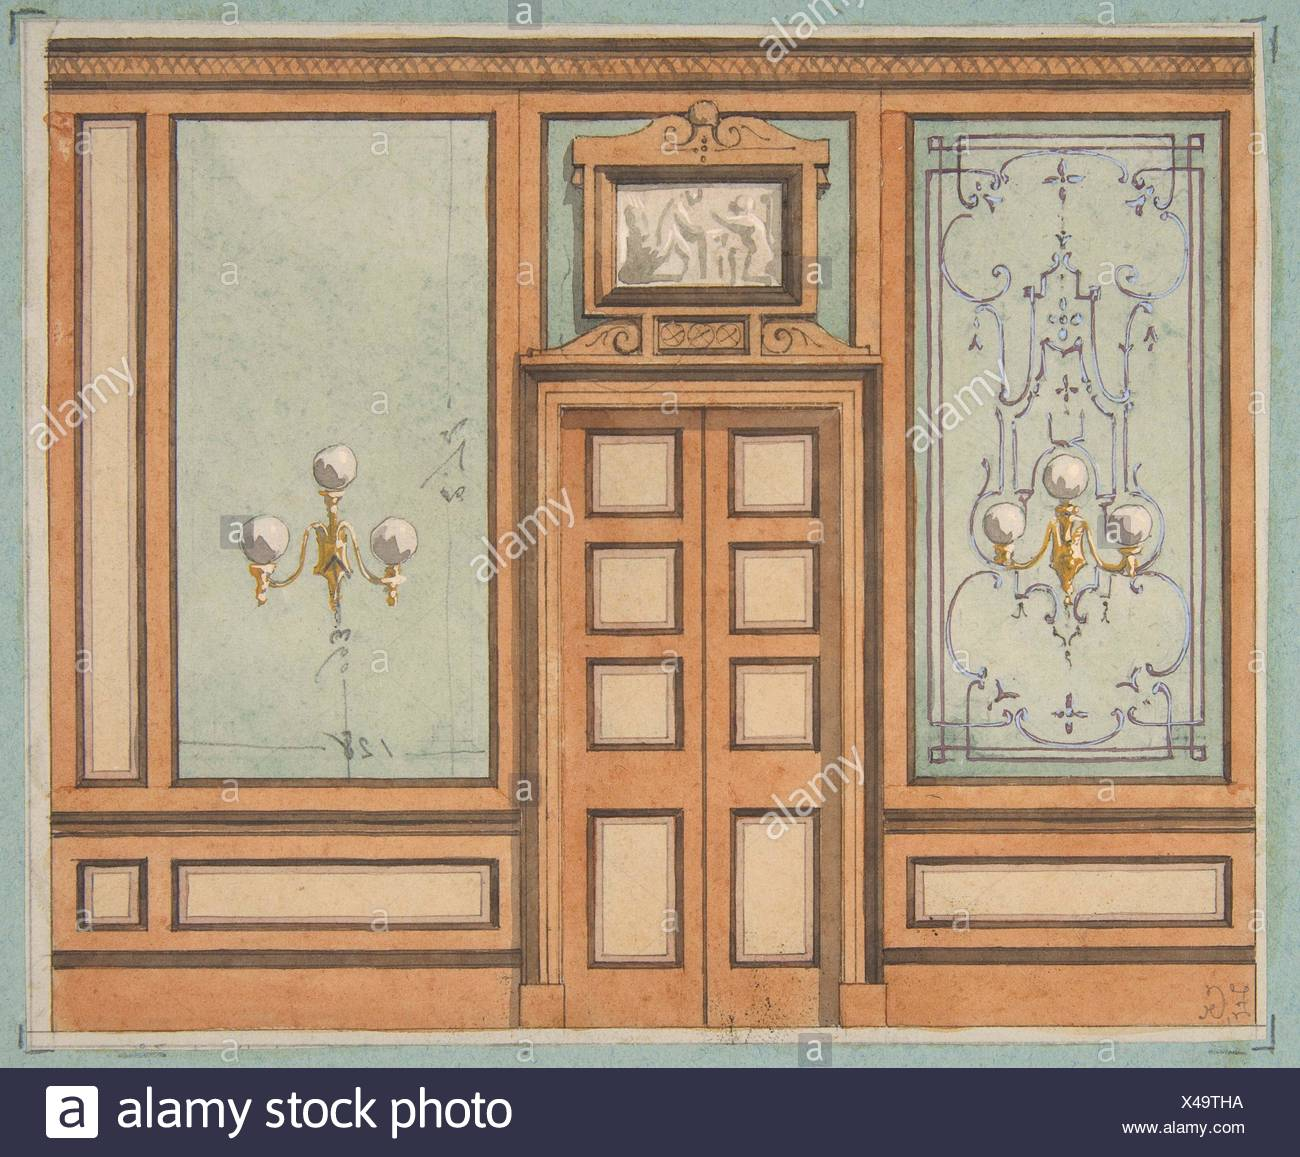 Elevation Of A Paneled Interior With Double Doors And Gaslight